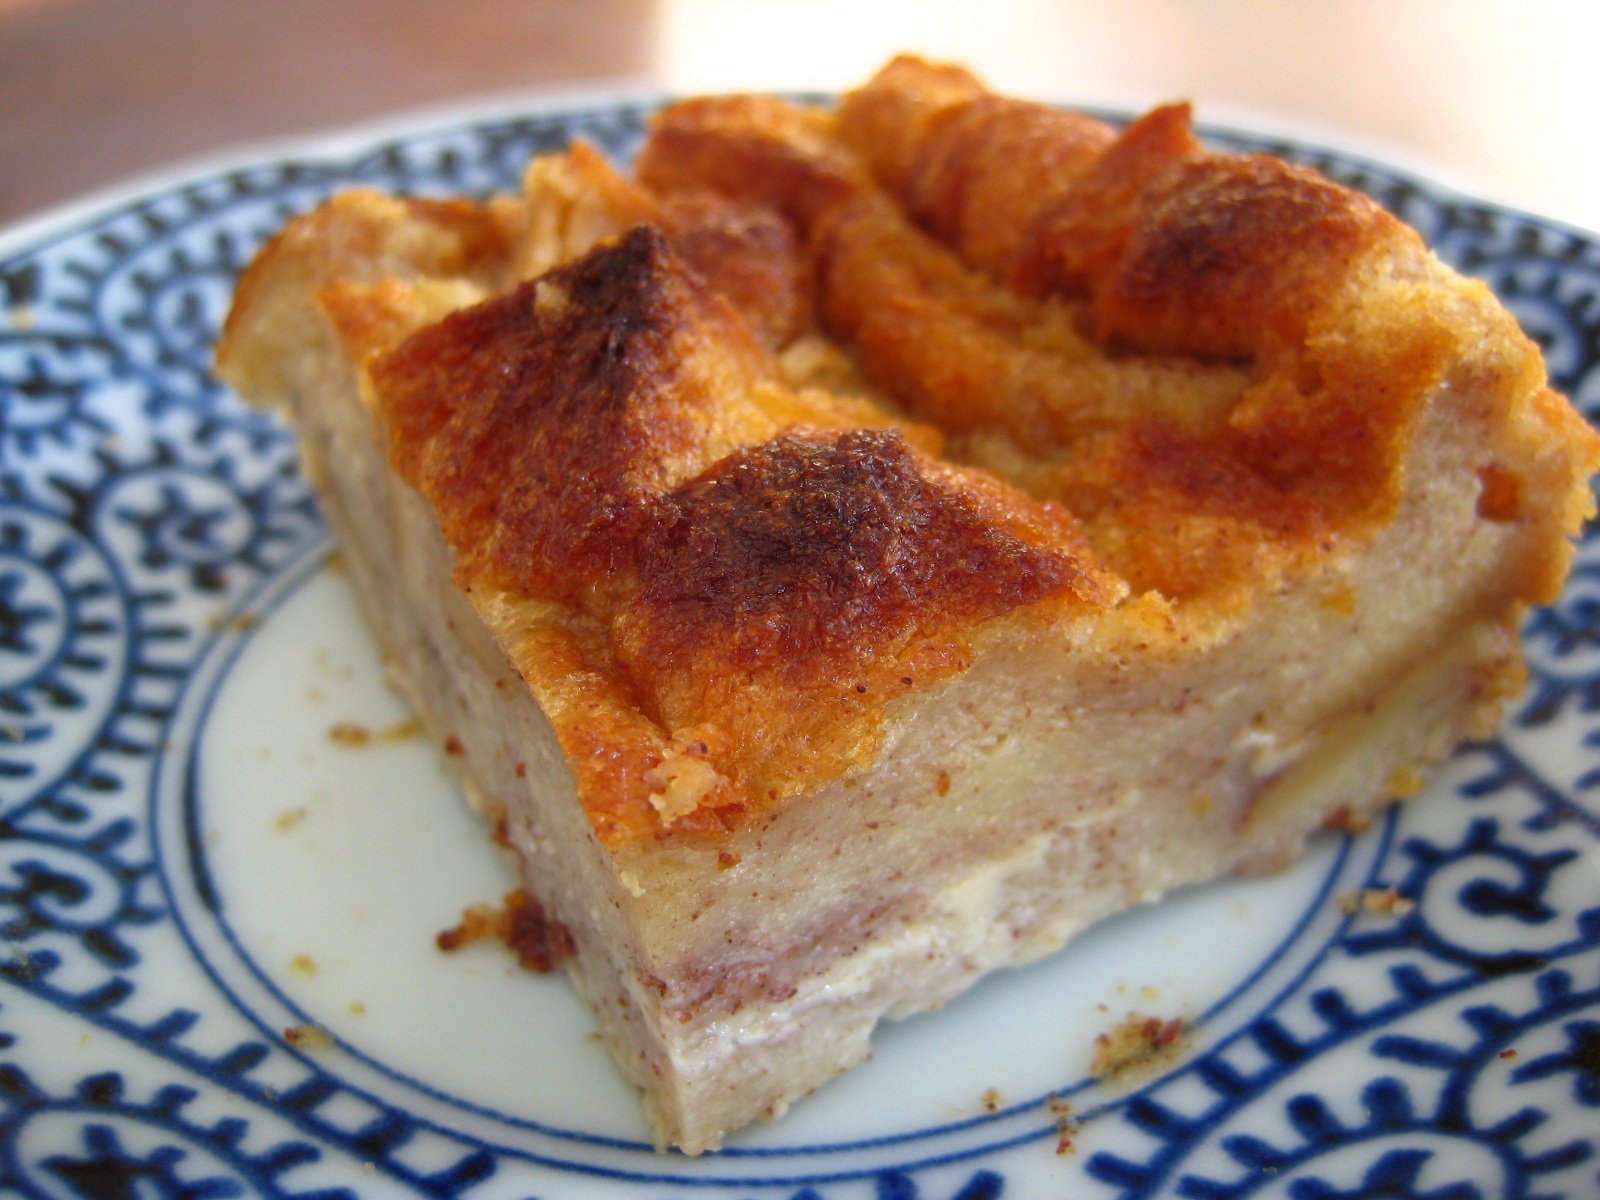 File:A slice of bread pudding.JPG - Wikimedia Commons